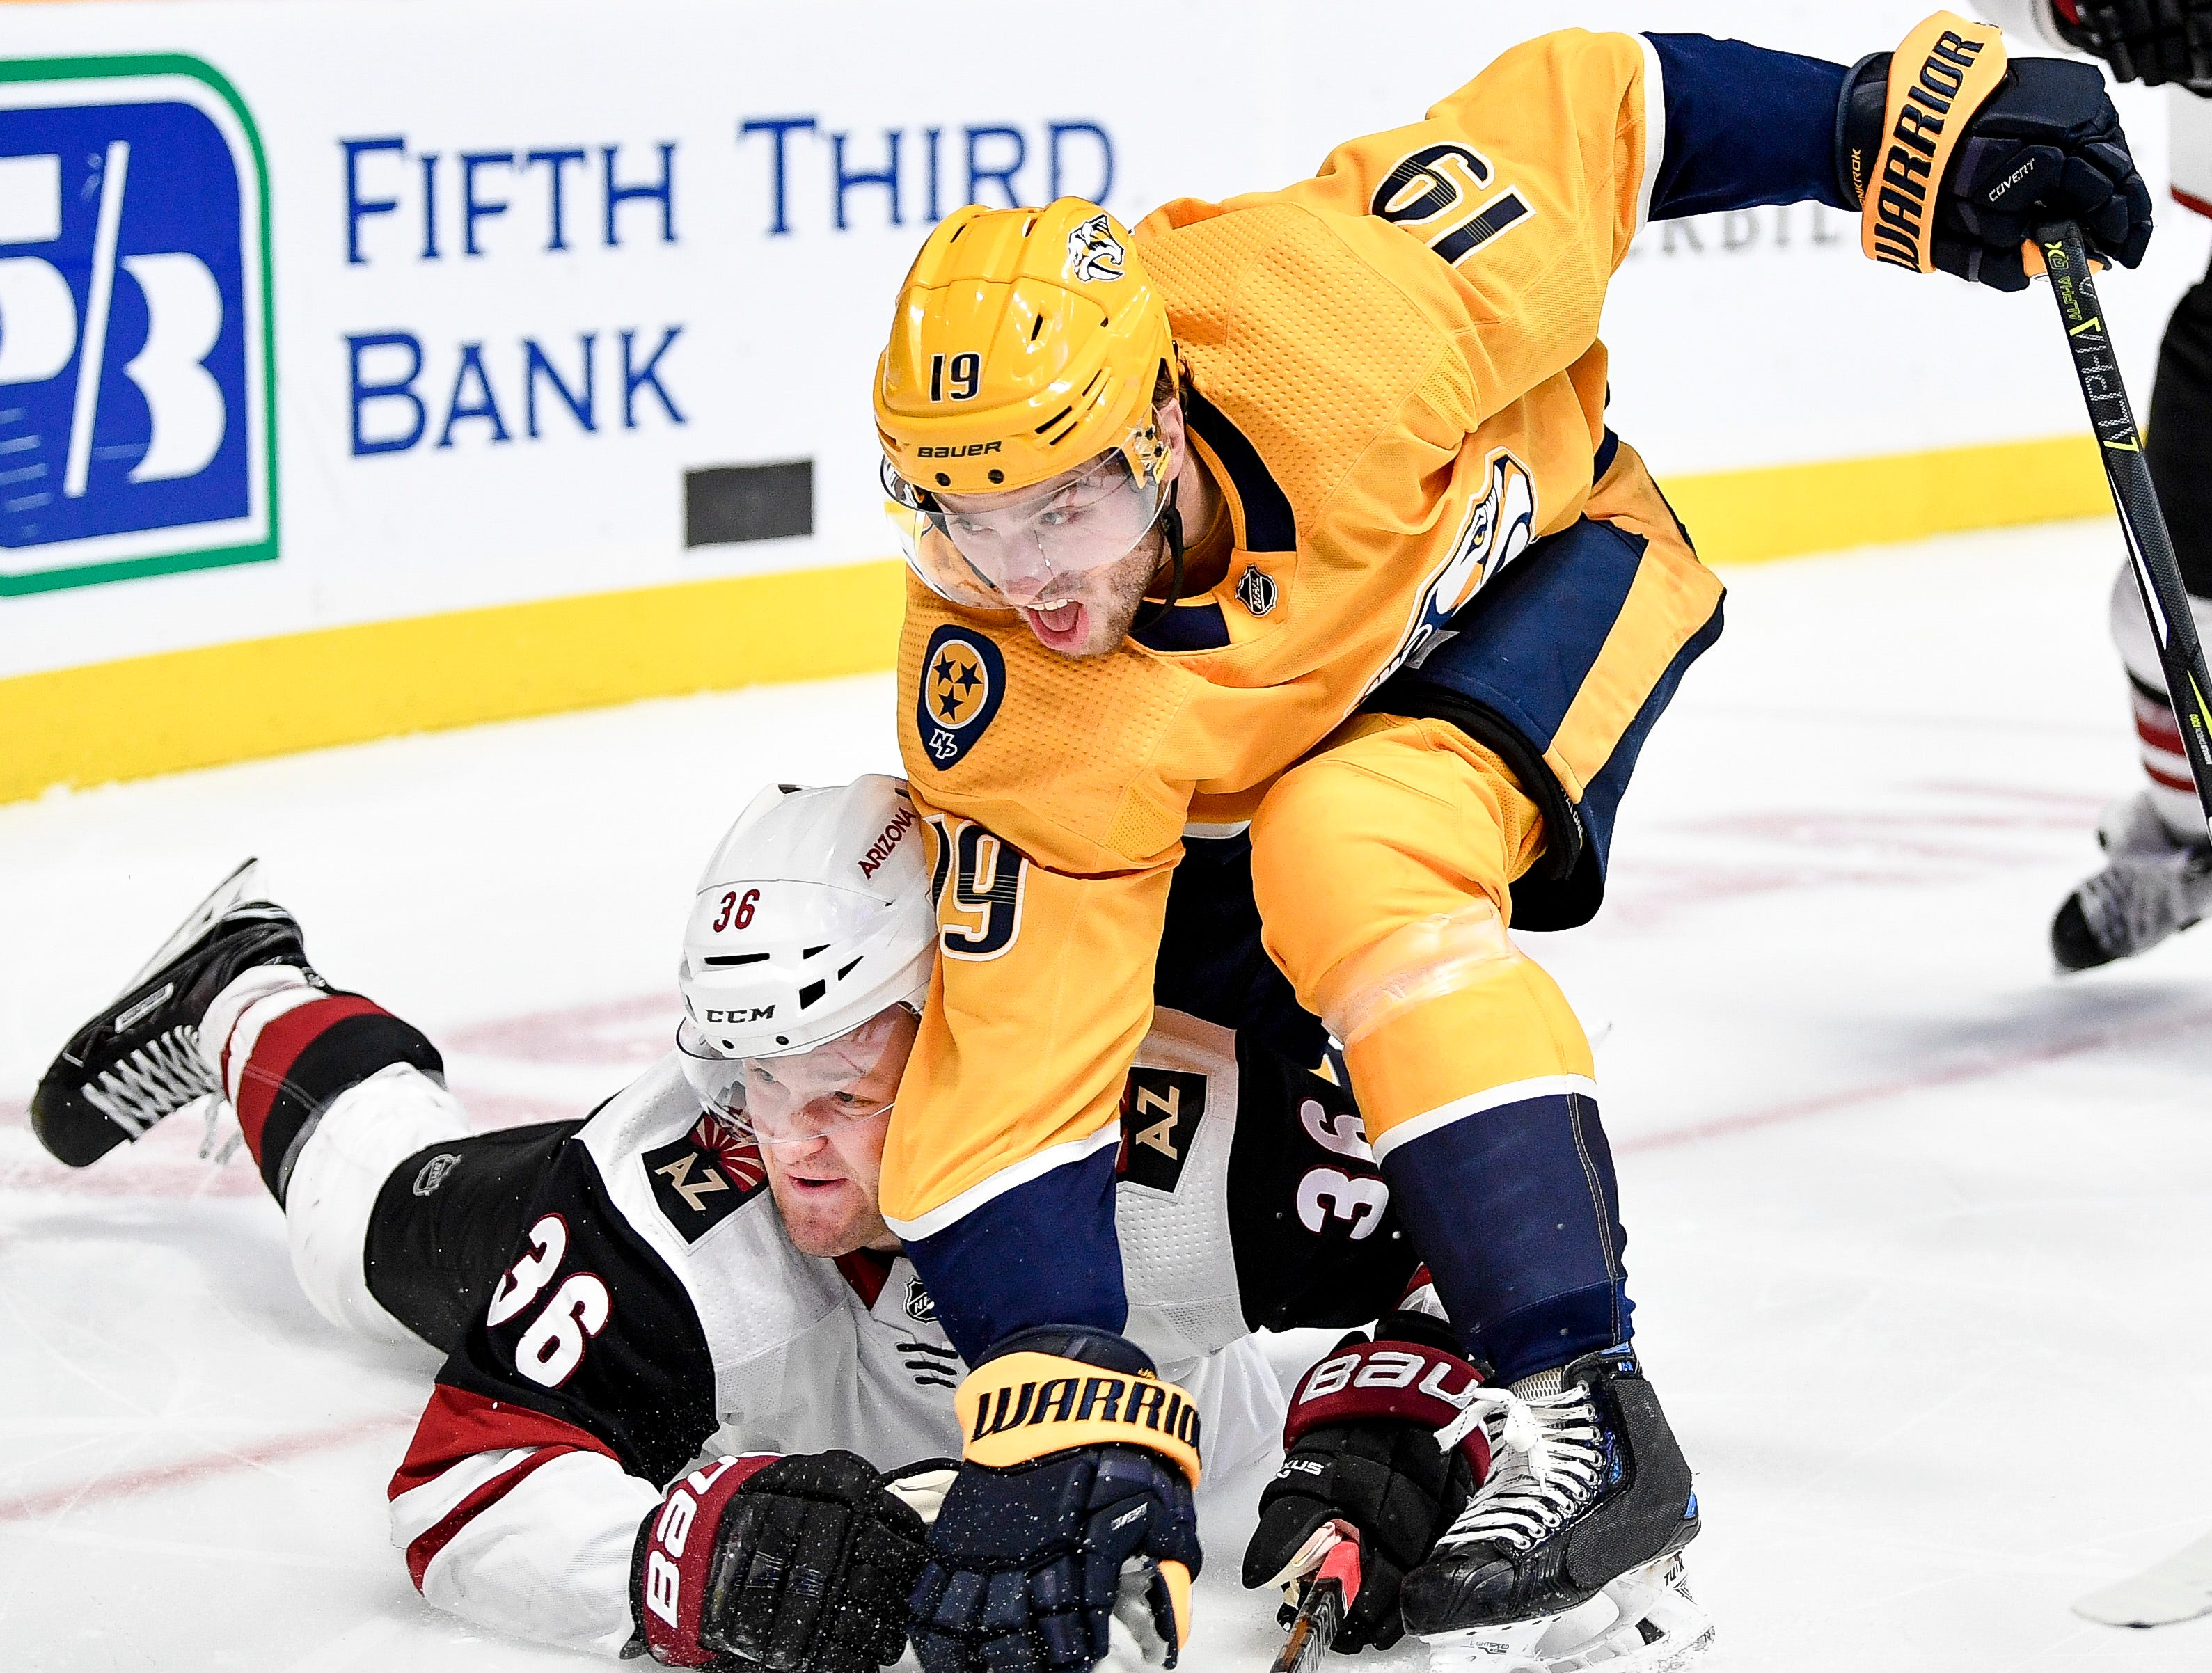 Nashville Predators center Calle Jarnkrok (19) collides with Arizona Coyotes right wing Christian Fischer (36) during the third period at Bridgestone Arena in Nashville, Tenn., Thursday, Nov. 29, 2018.